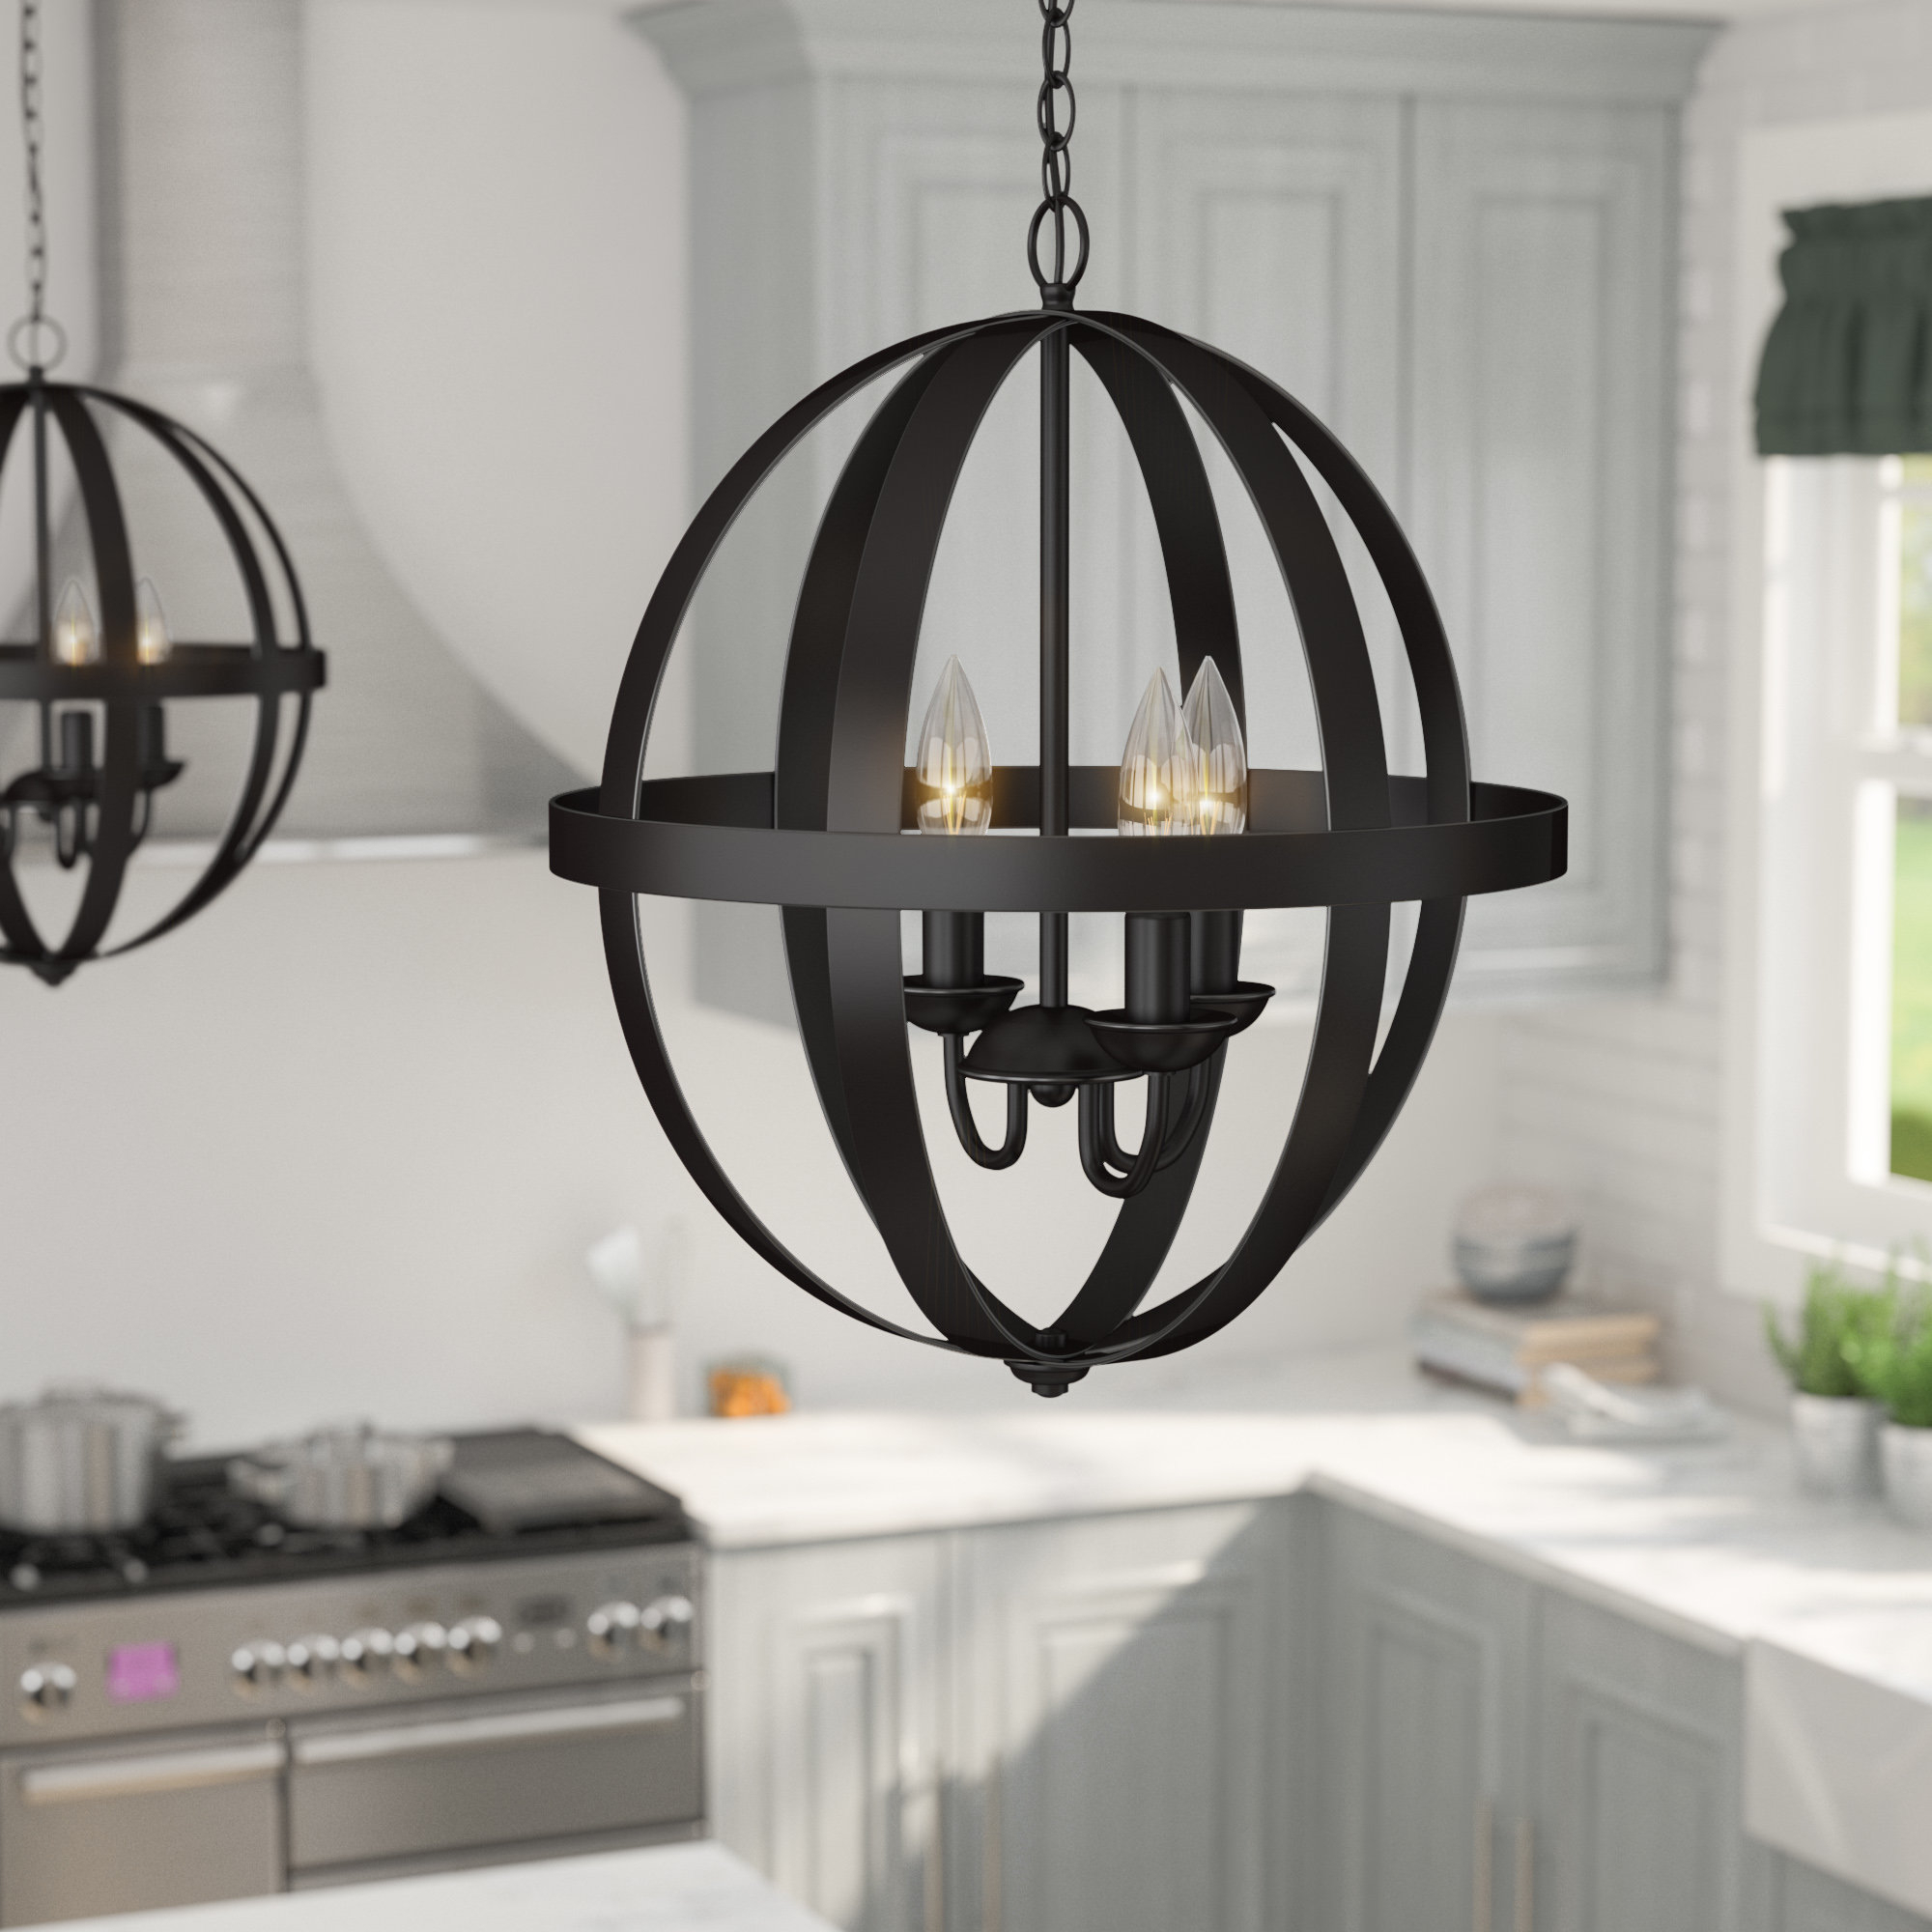 Most Recently Released La Barge 3 Light Globe Chandelier Within Shipststour 3 Light Globe Chandeliers (View 16 of 25)